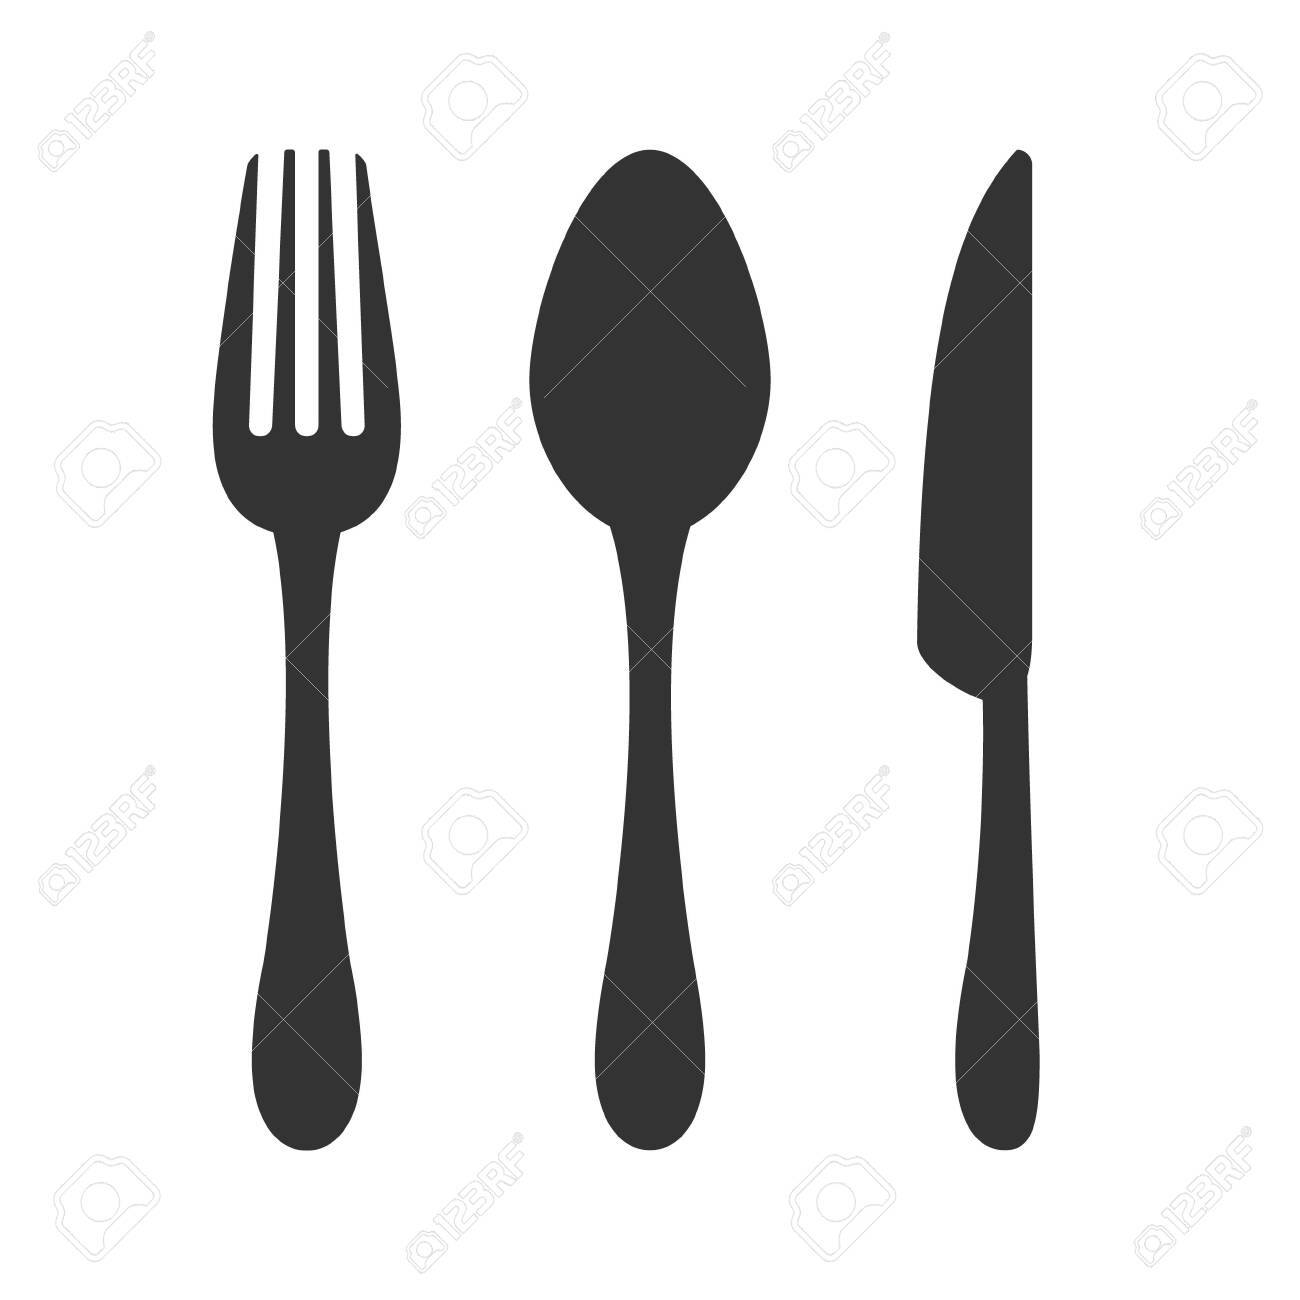 Knife, fork and spoon icon. Restaurant sign - 139621690